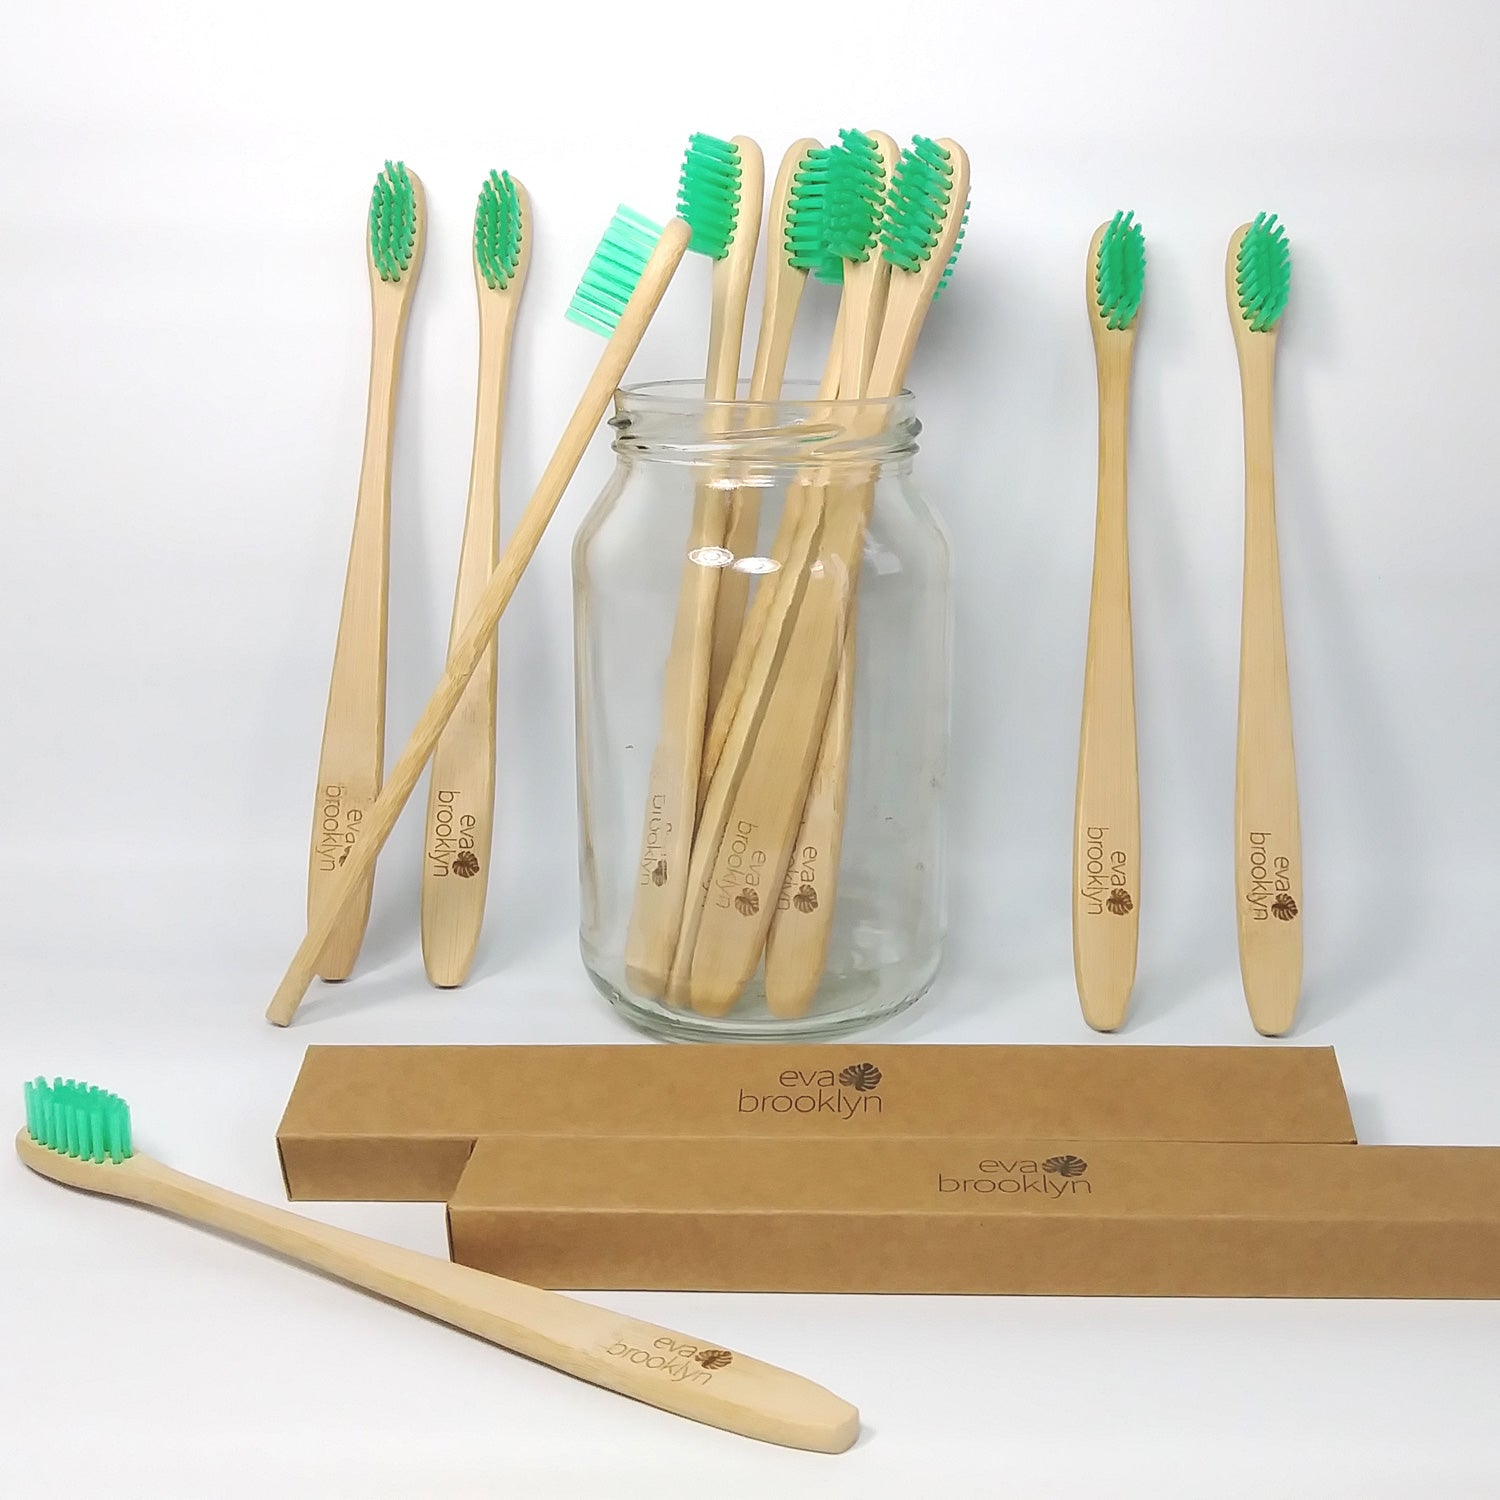 12 Bamboo toothbrushes pack